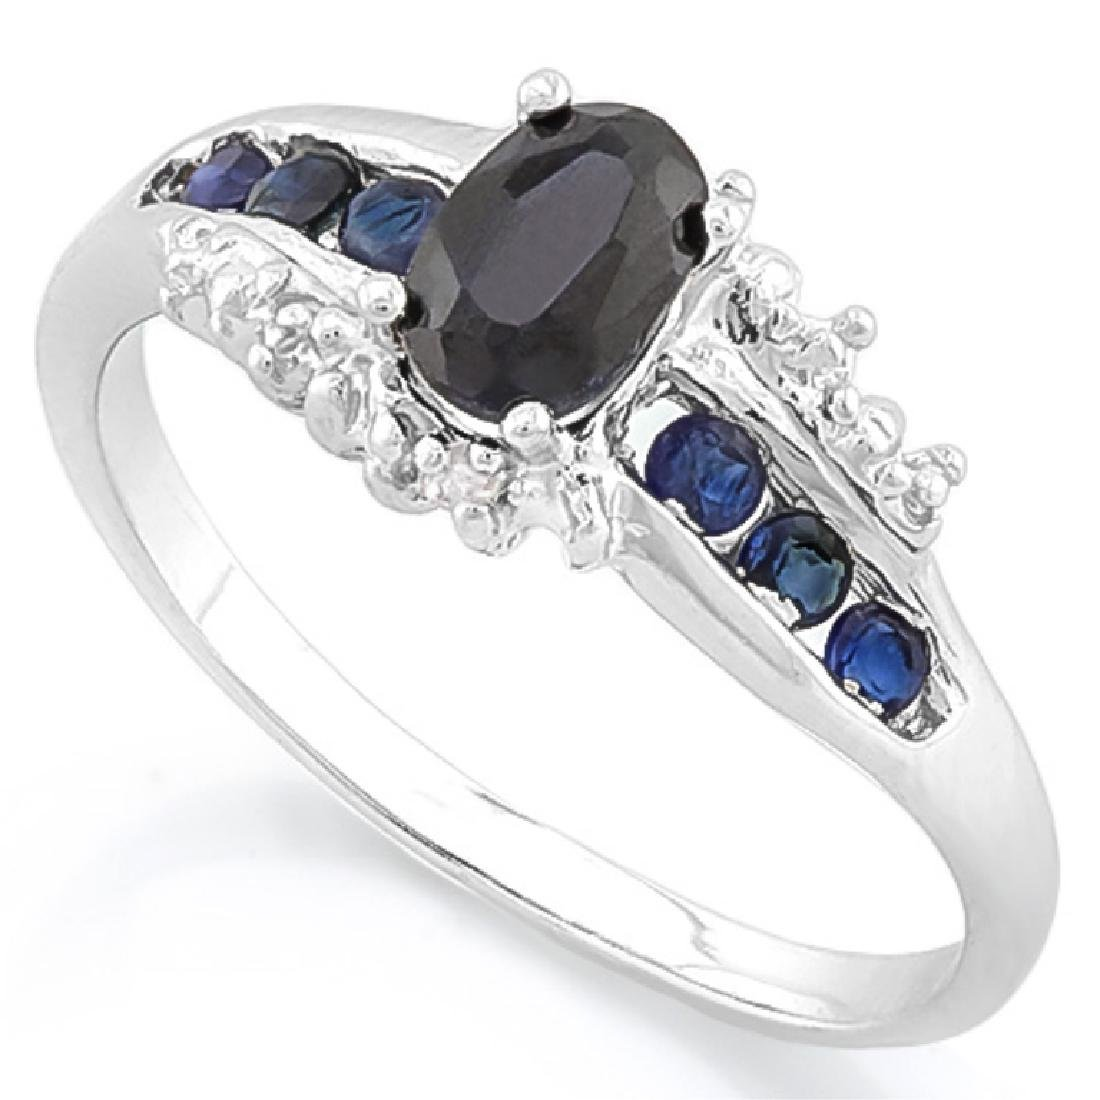 GLAM GENUINE BLACK/WHITE SAPPHIRE ANTIQUE STYLE RING